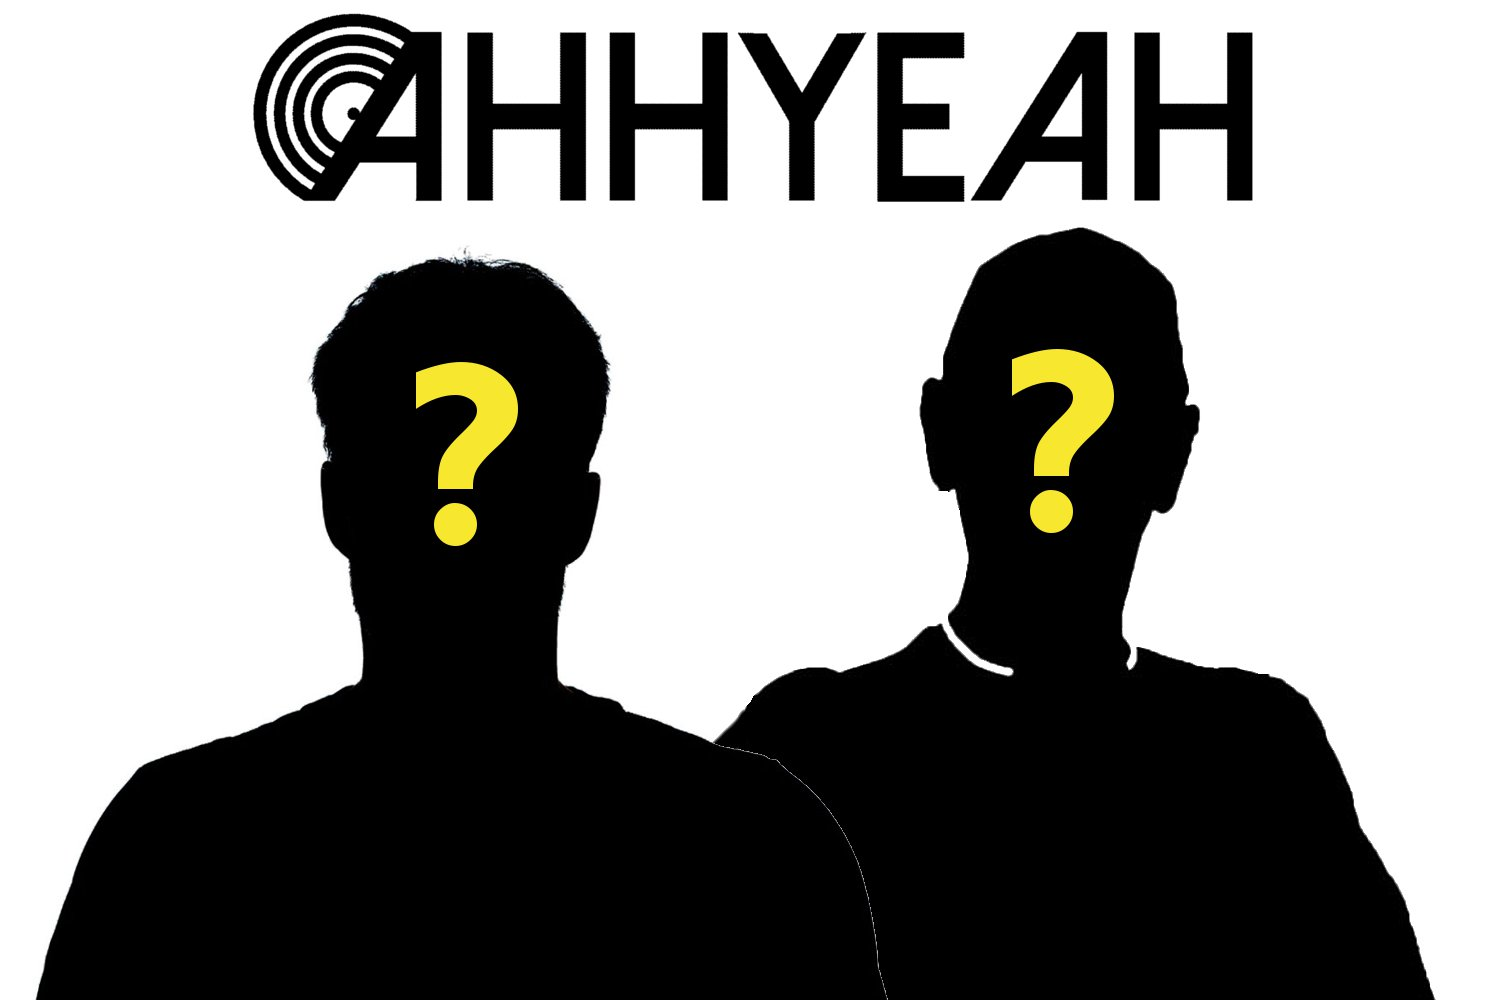 Who is AhhYeah?